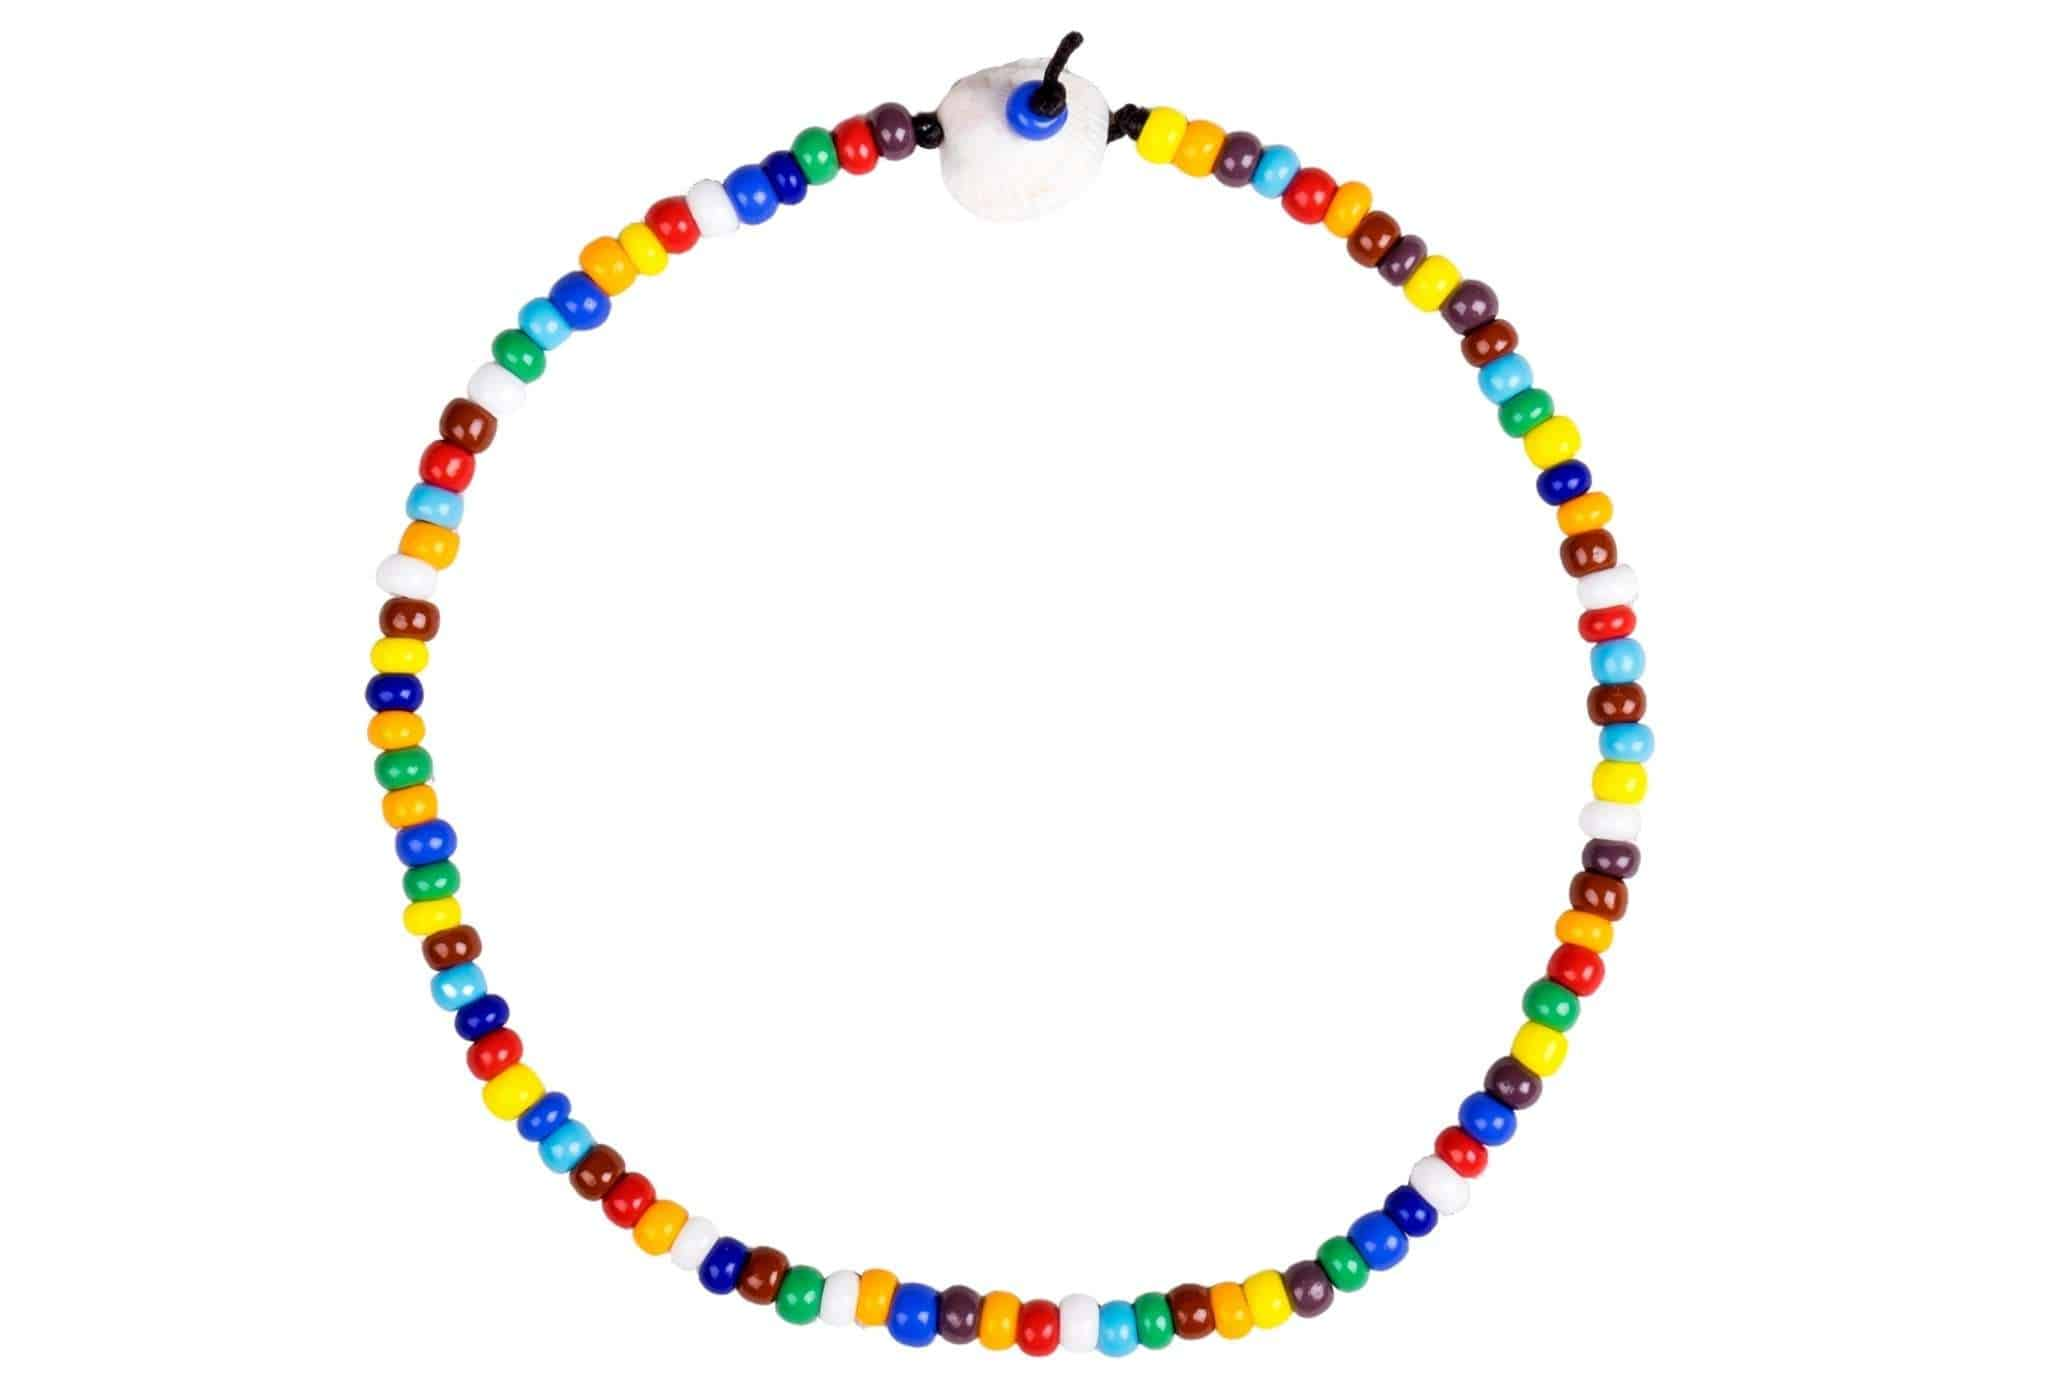 men's necklace in a choker style